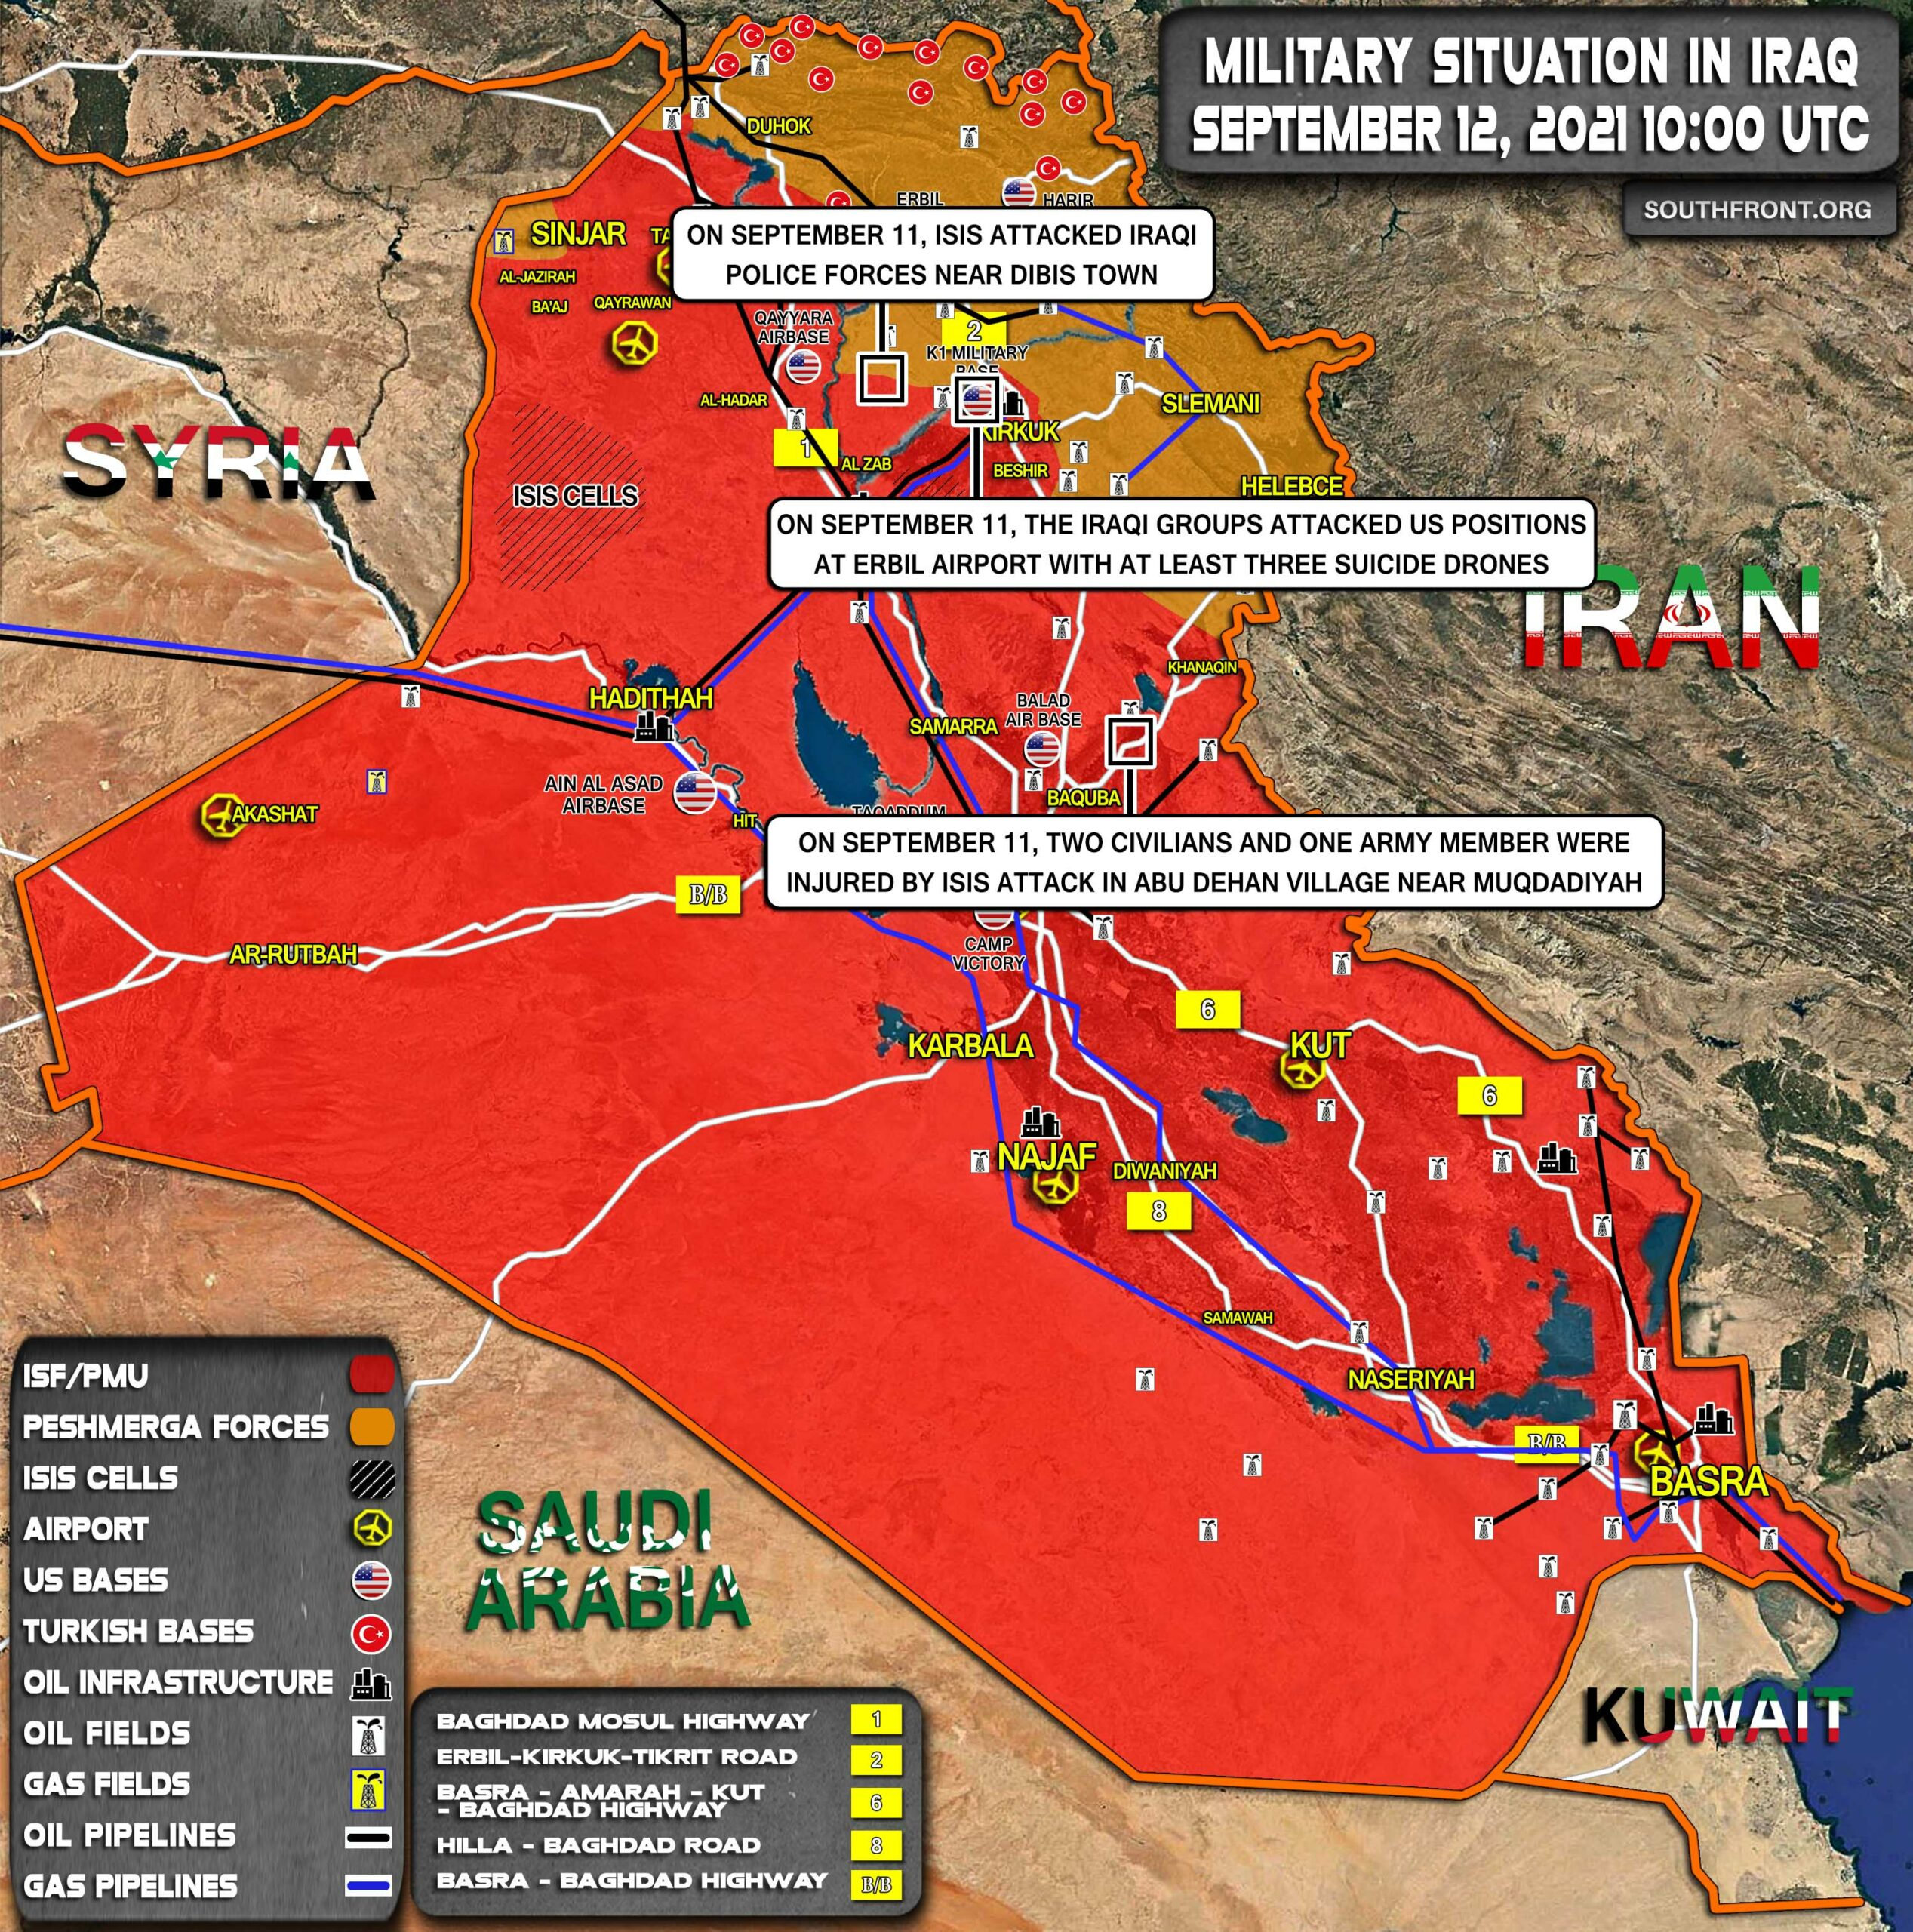 Military Situation In Iraq On September 12, 2021 (Map Update)